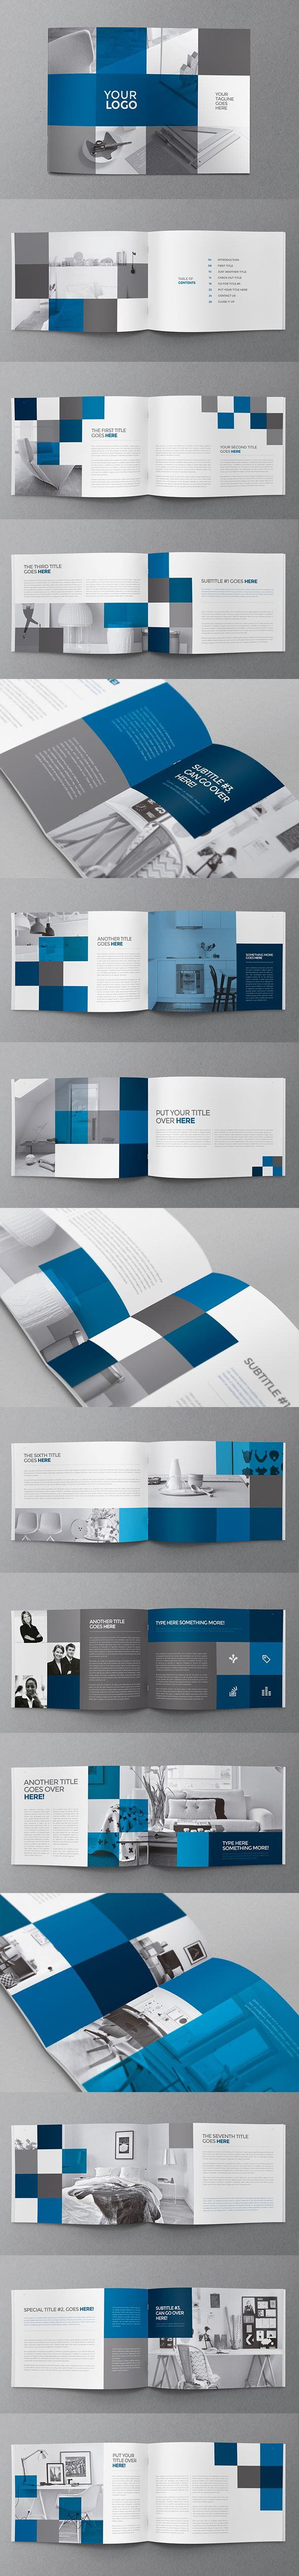 Minimal Blue Squares Brochure. Download here: http://graphicriver.net/item/minimal-blue-squares-brochure/11921055?ref=abradesign